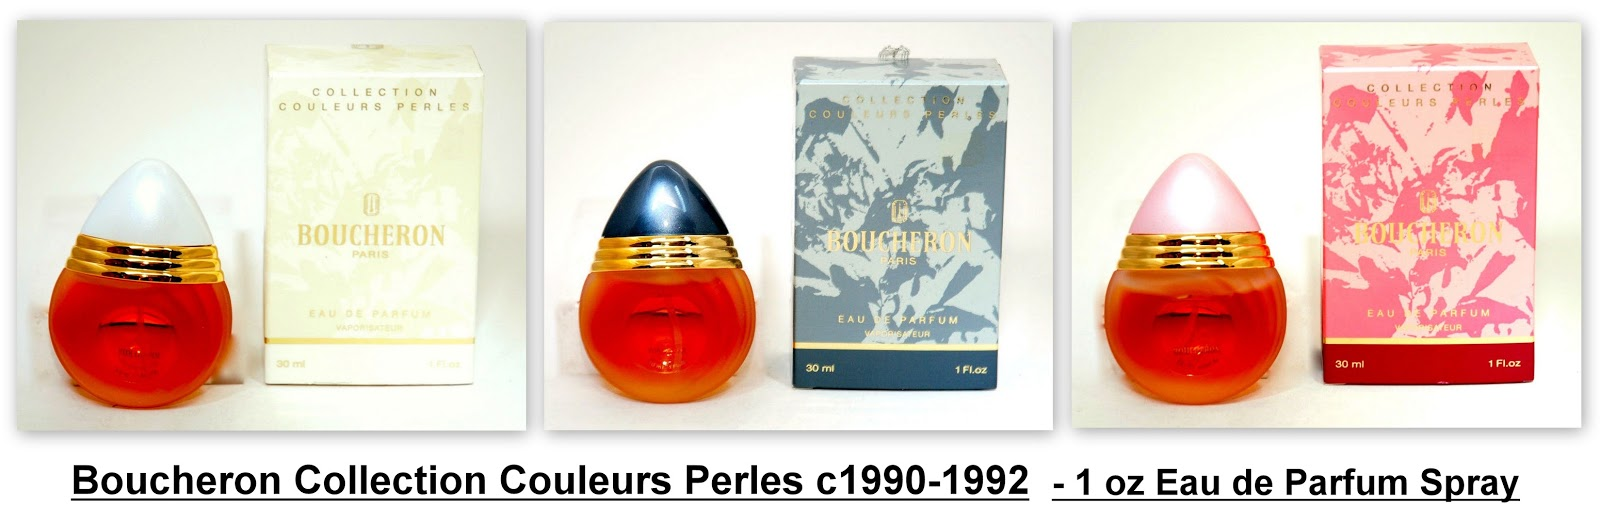 Cleopatras Boudoir Boucheron By C1988 Hermes Terre D Parfum Flacon H 2014 For Men Edp 75ml These Bottles Had Colored Plastic Cabochons Caps Simulating Pink Tahitian Black And White Pearls Spray Held 1 Ounce Of Eau De